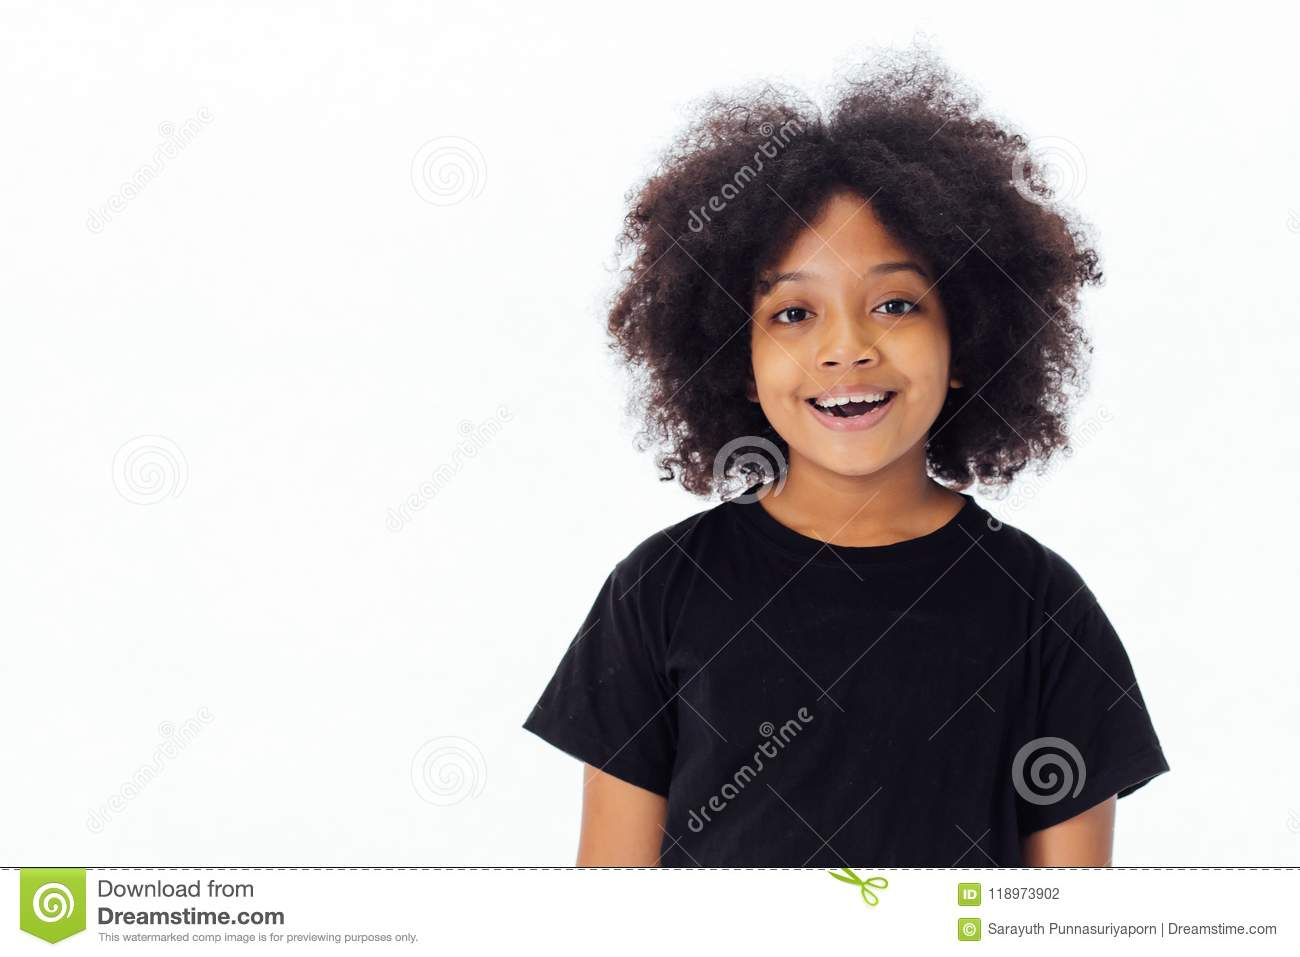 Cute and happy African American kid smiling and laughing isolate